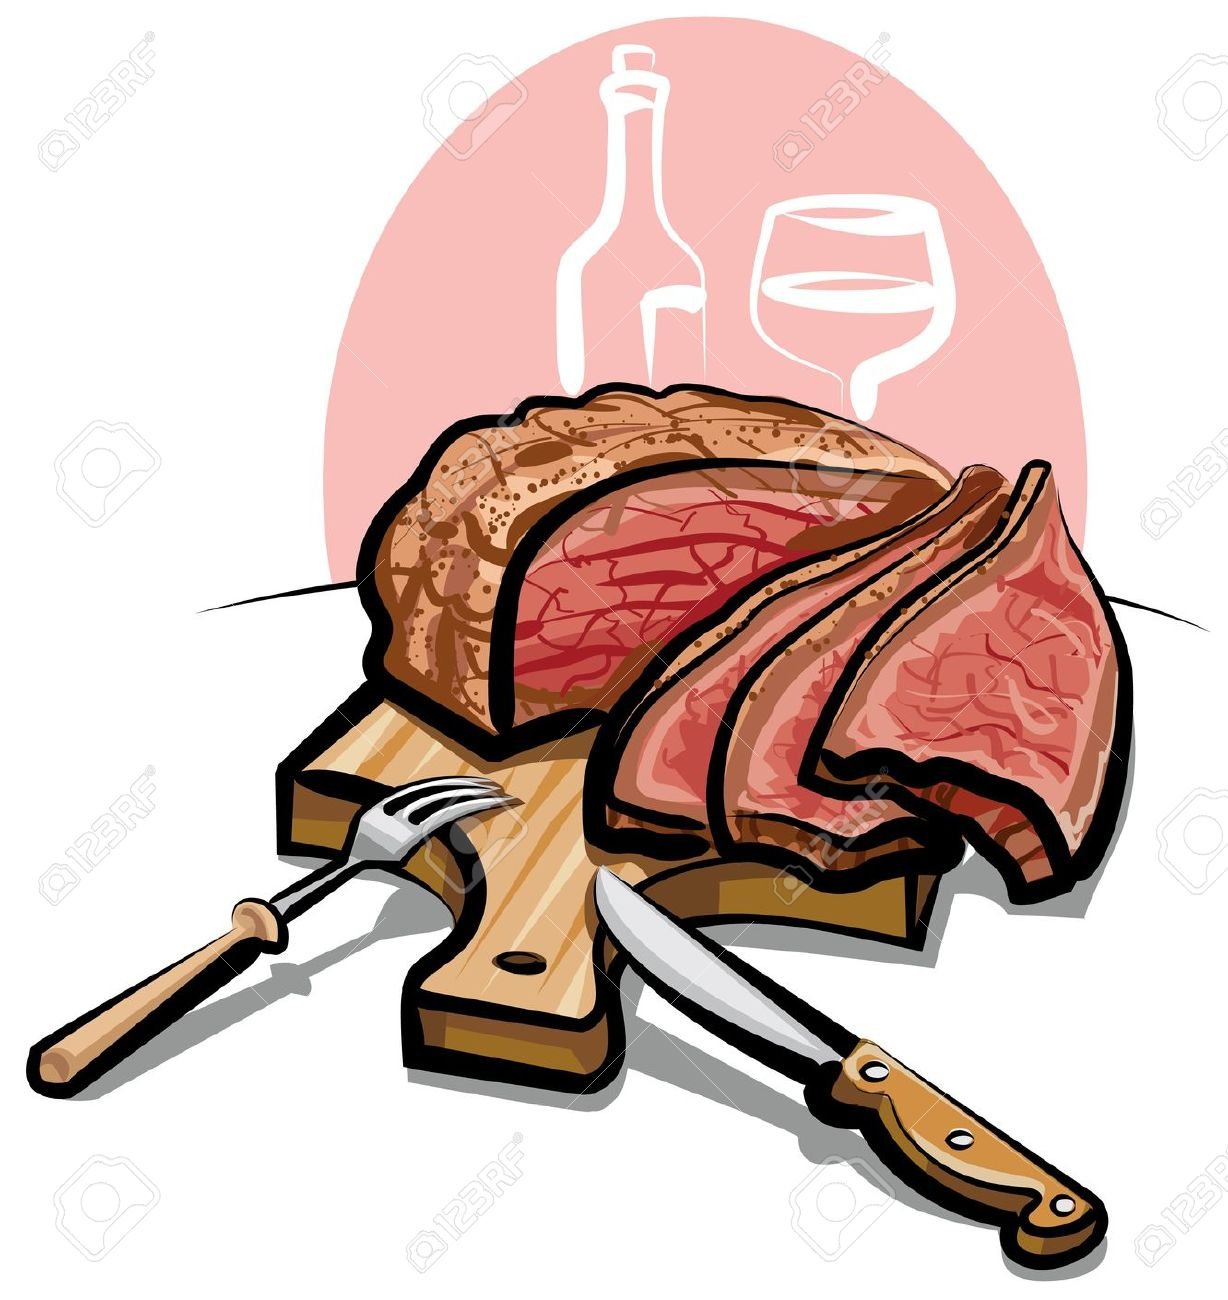 Clipart roast beef dinner.